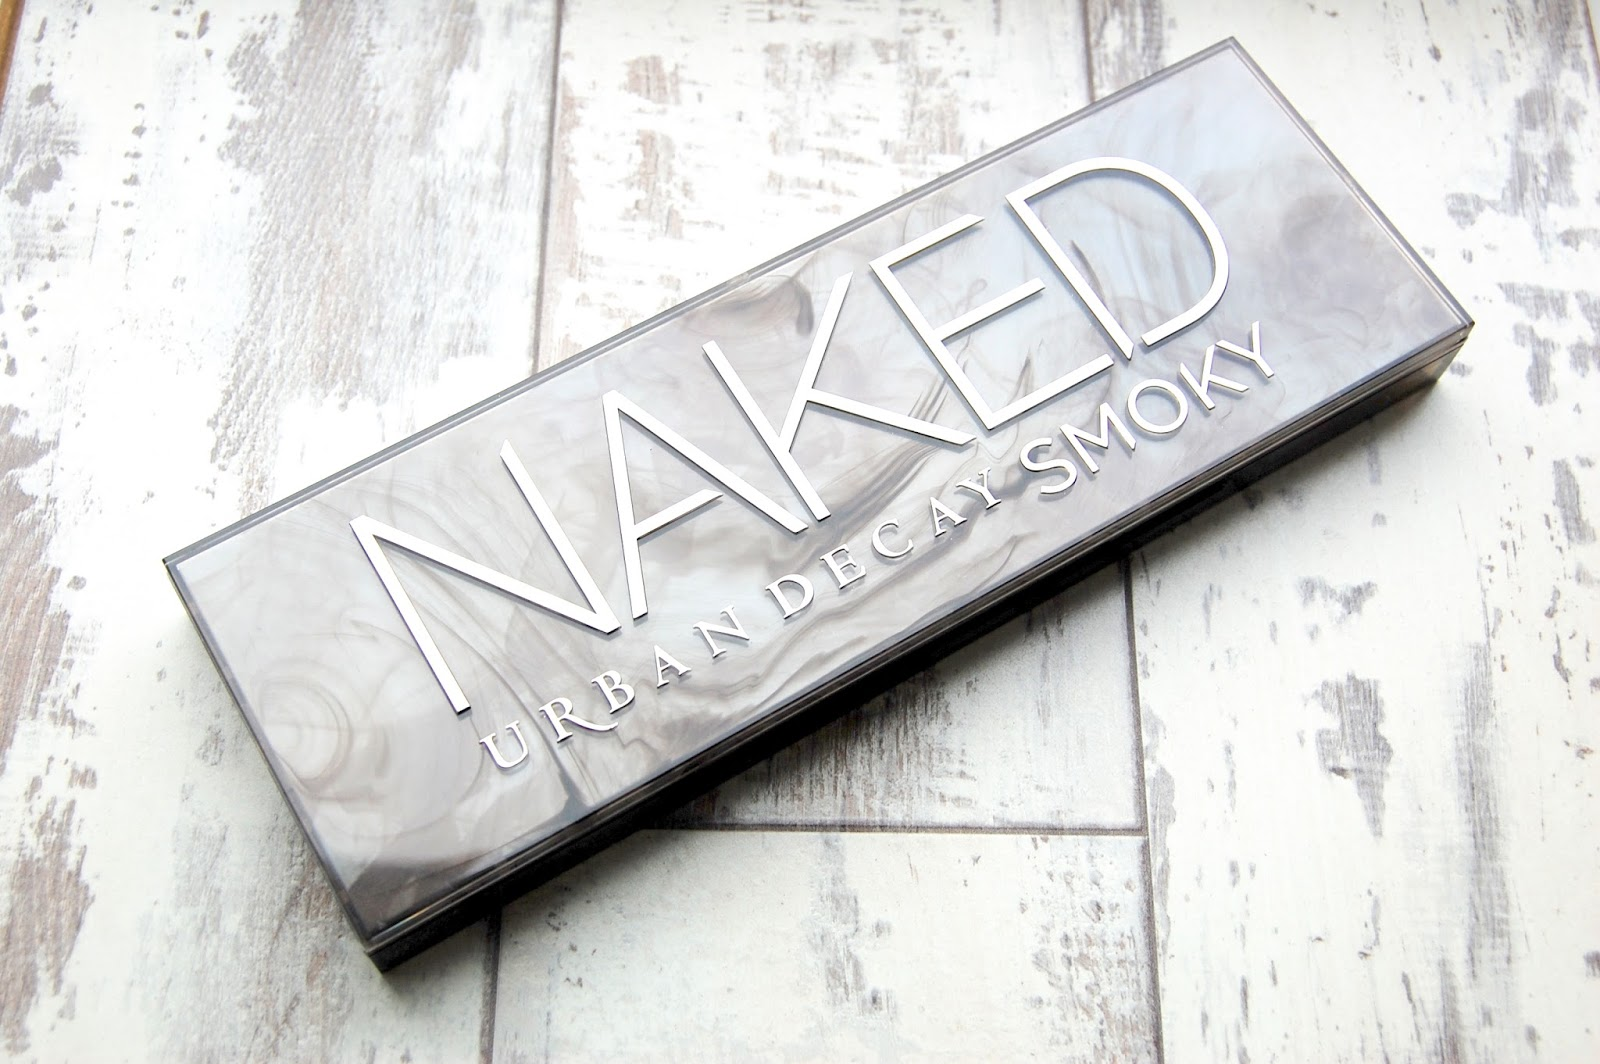 Through New Eyesx - Urban Decay Smokey Eye Palette Review and Swatches